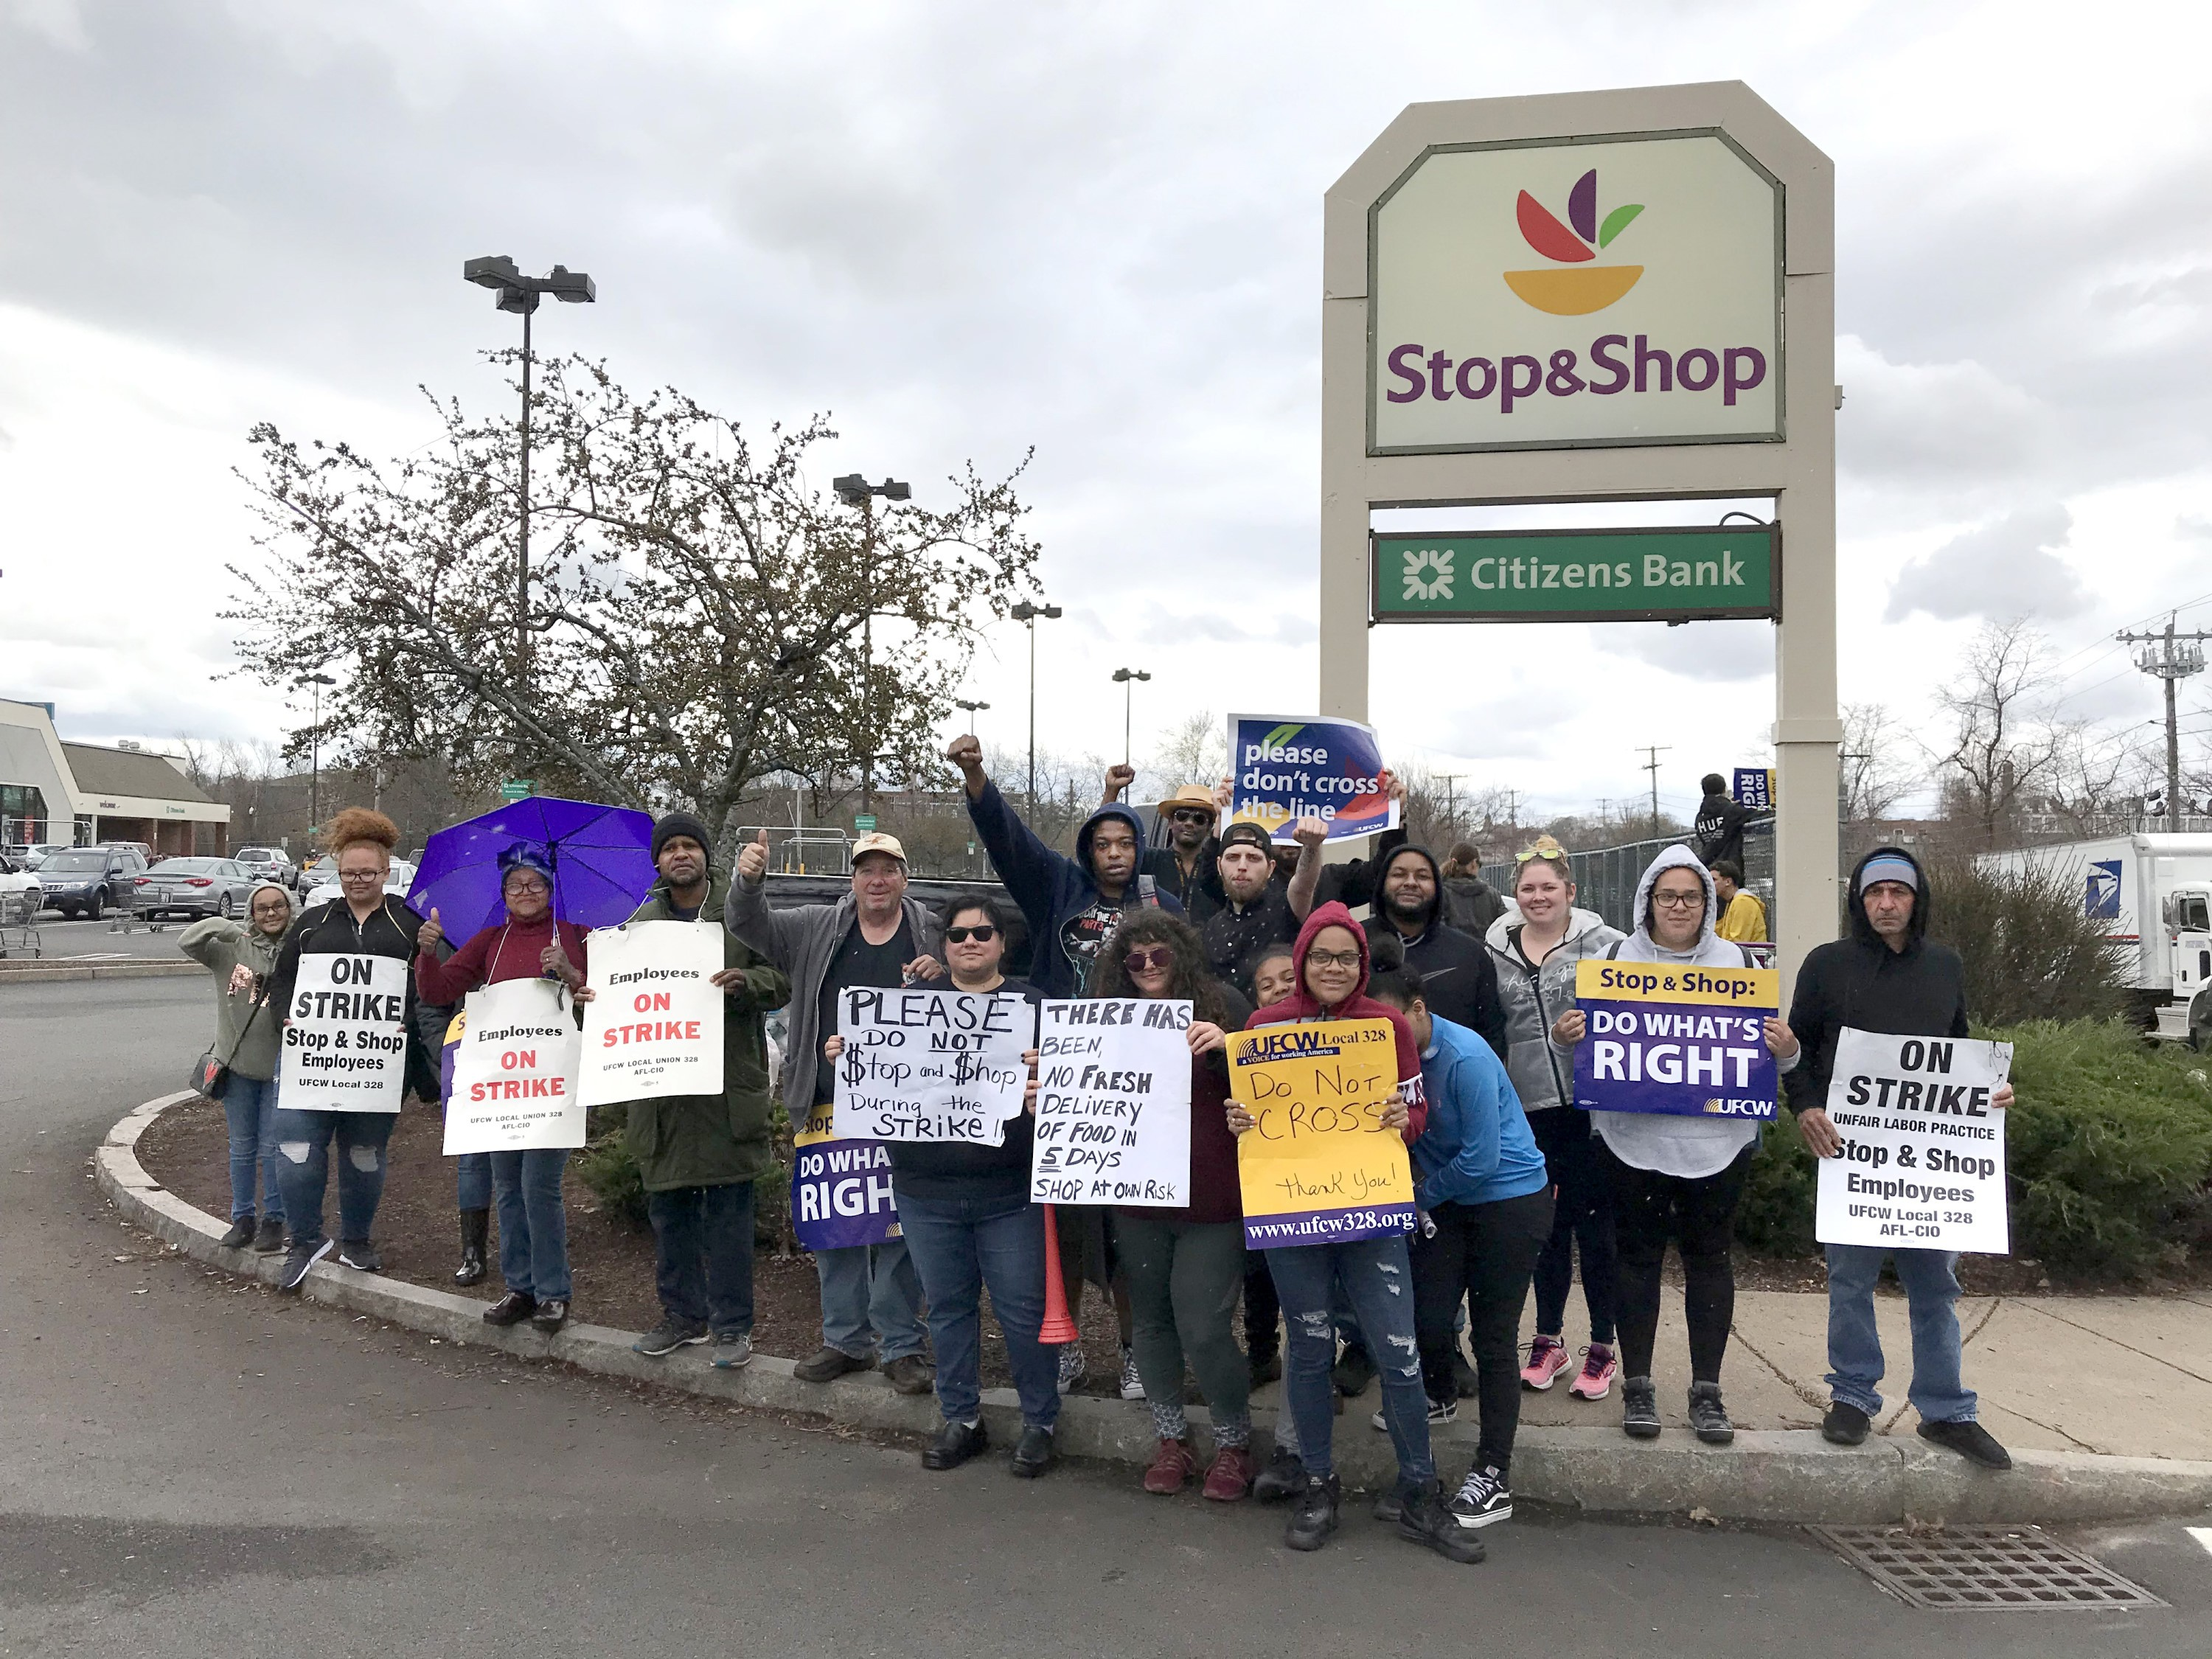 Tentative deal reached between Stop & Shop, striking workers